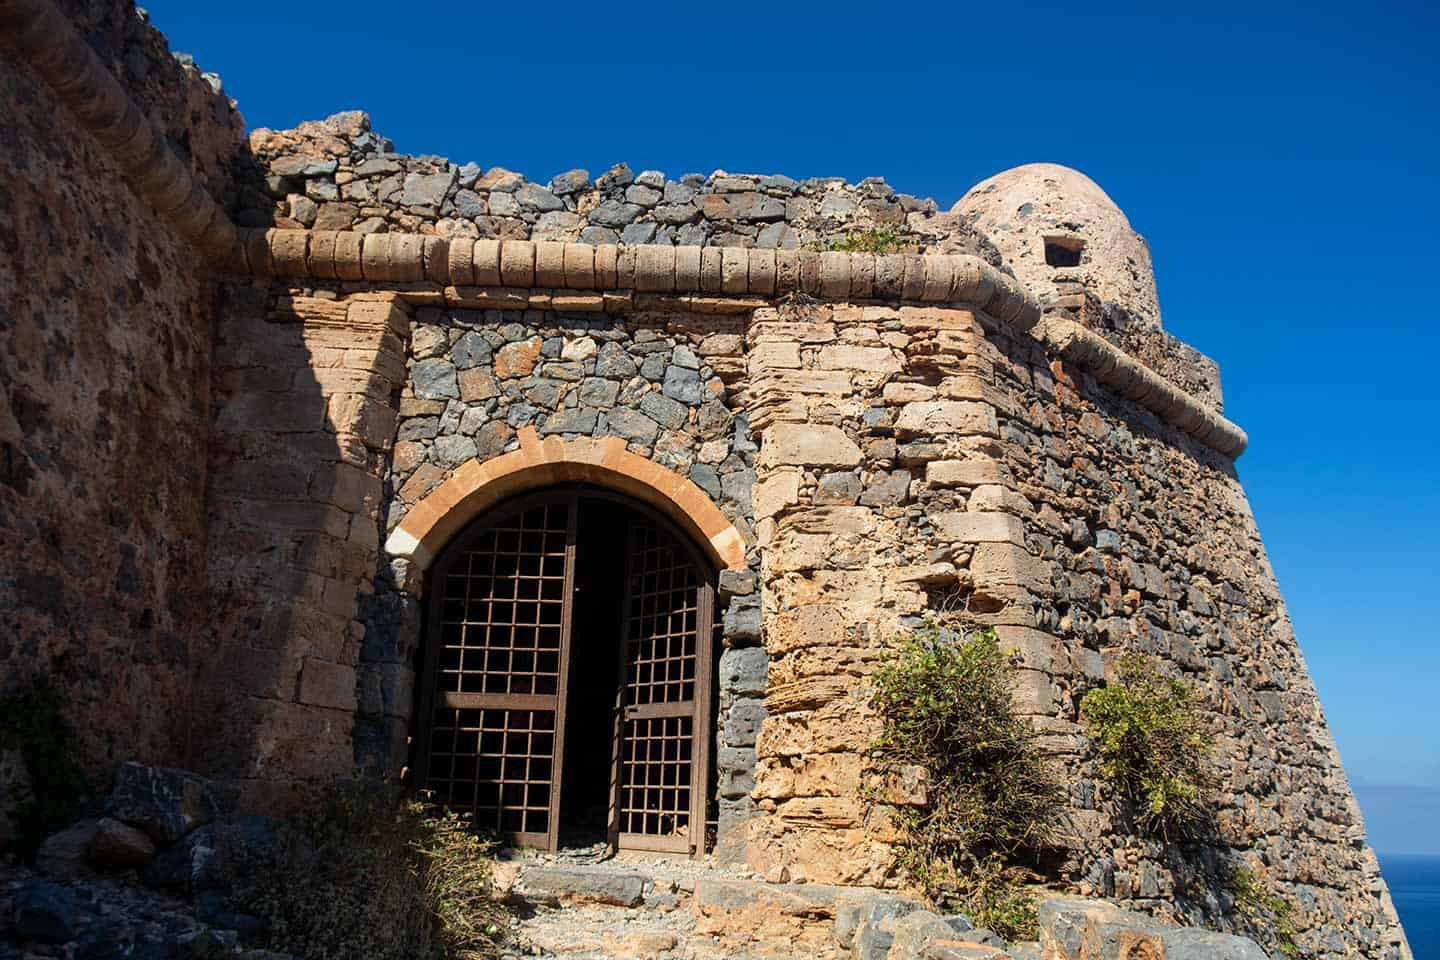 Image of the gatehouse at Gramvousa castle Crete Greece